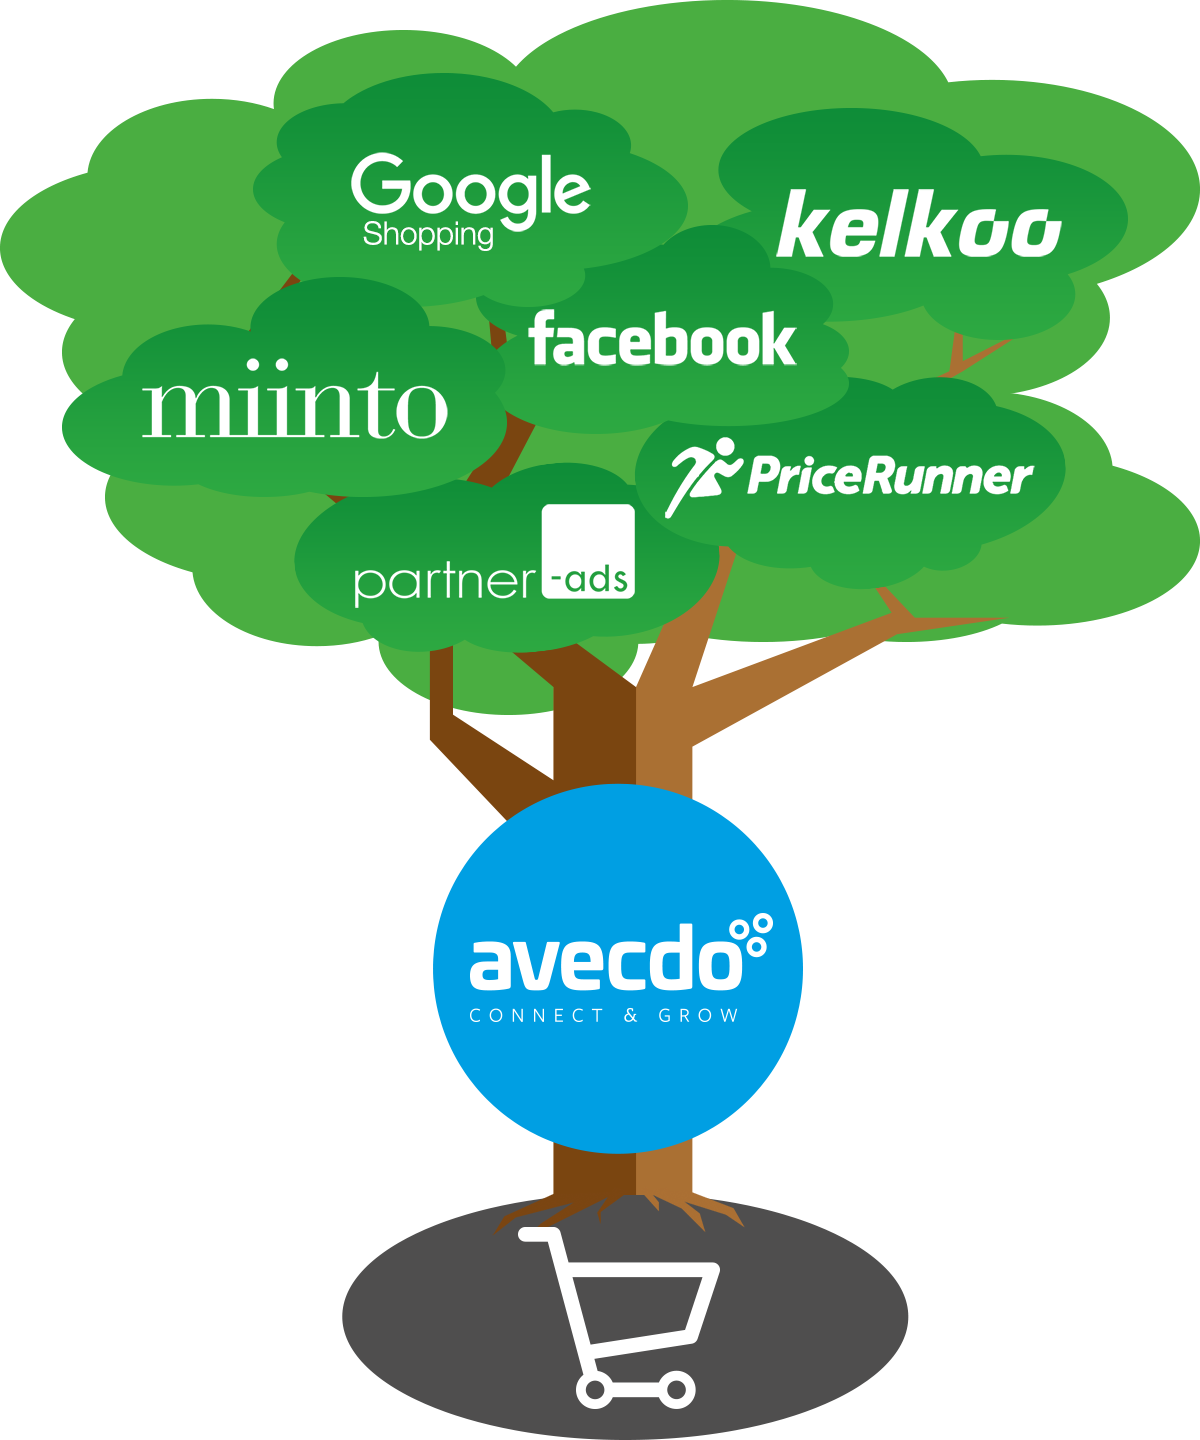 A product feed plugin or link to avecdo - is all you need